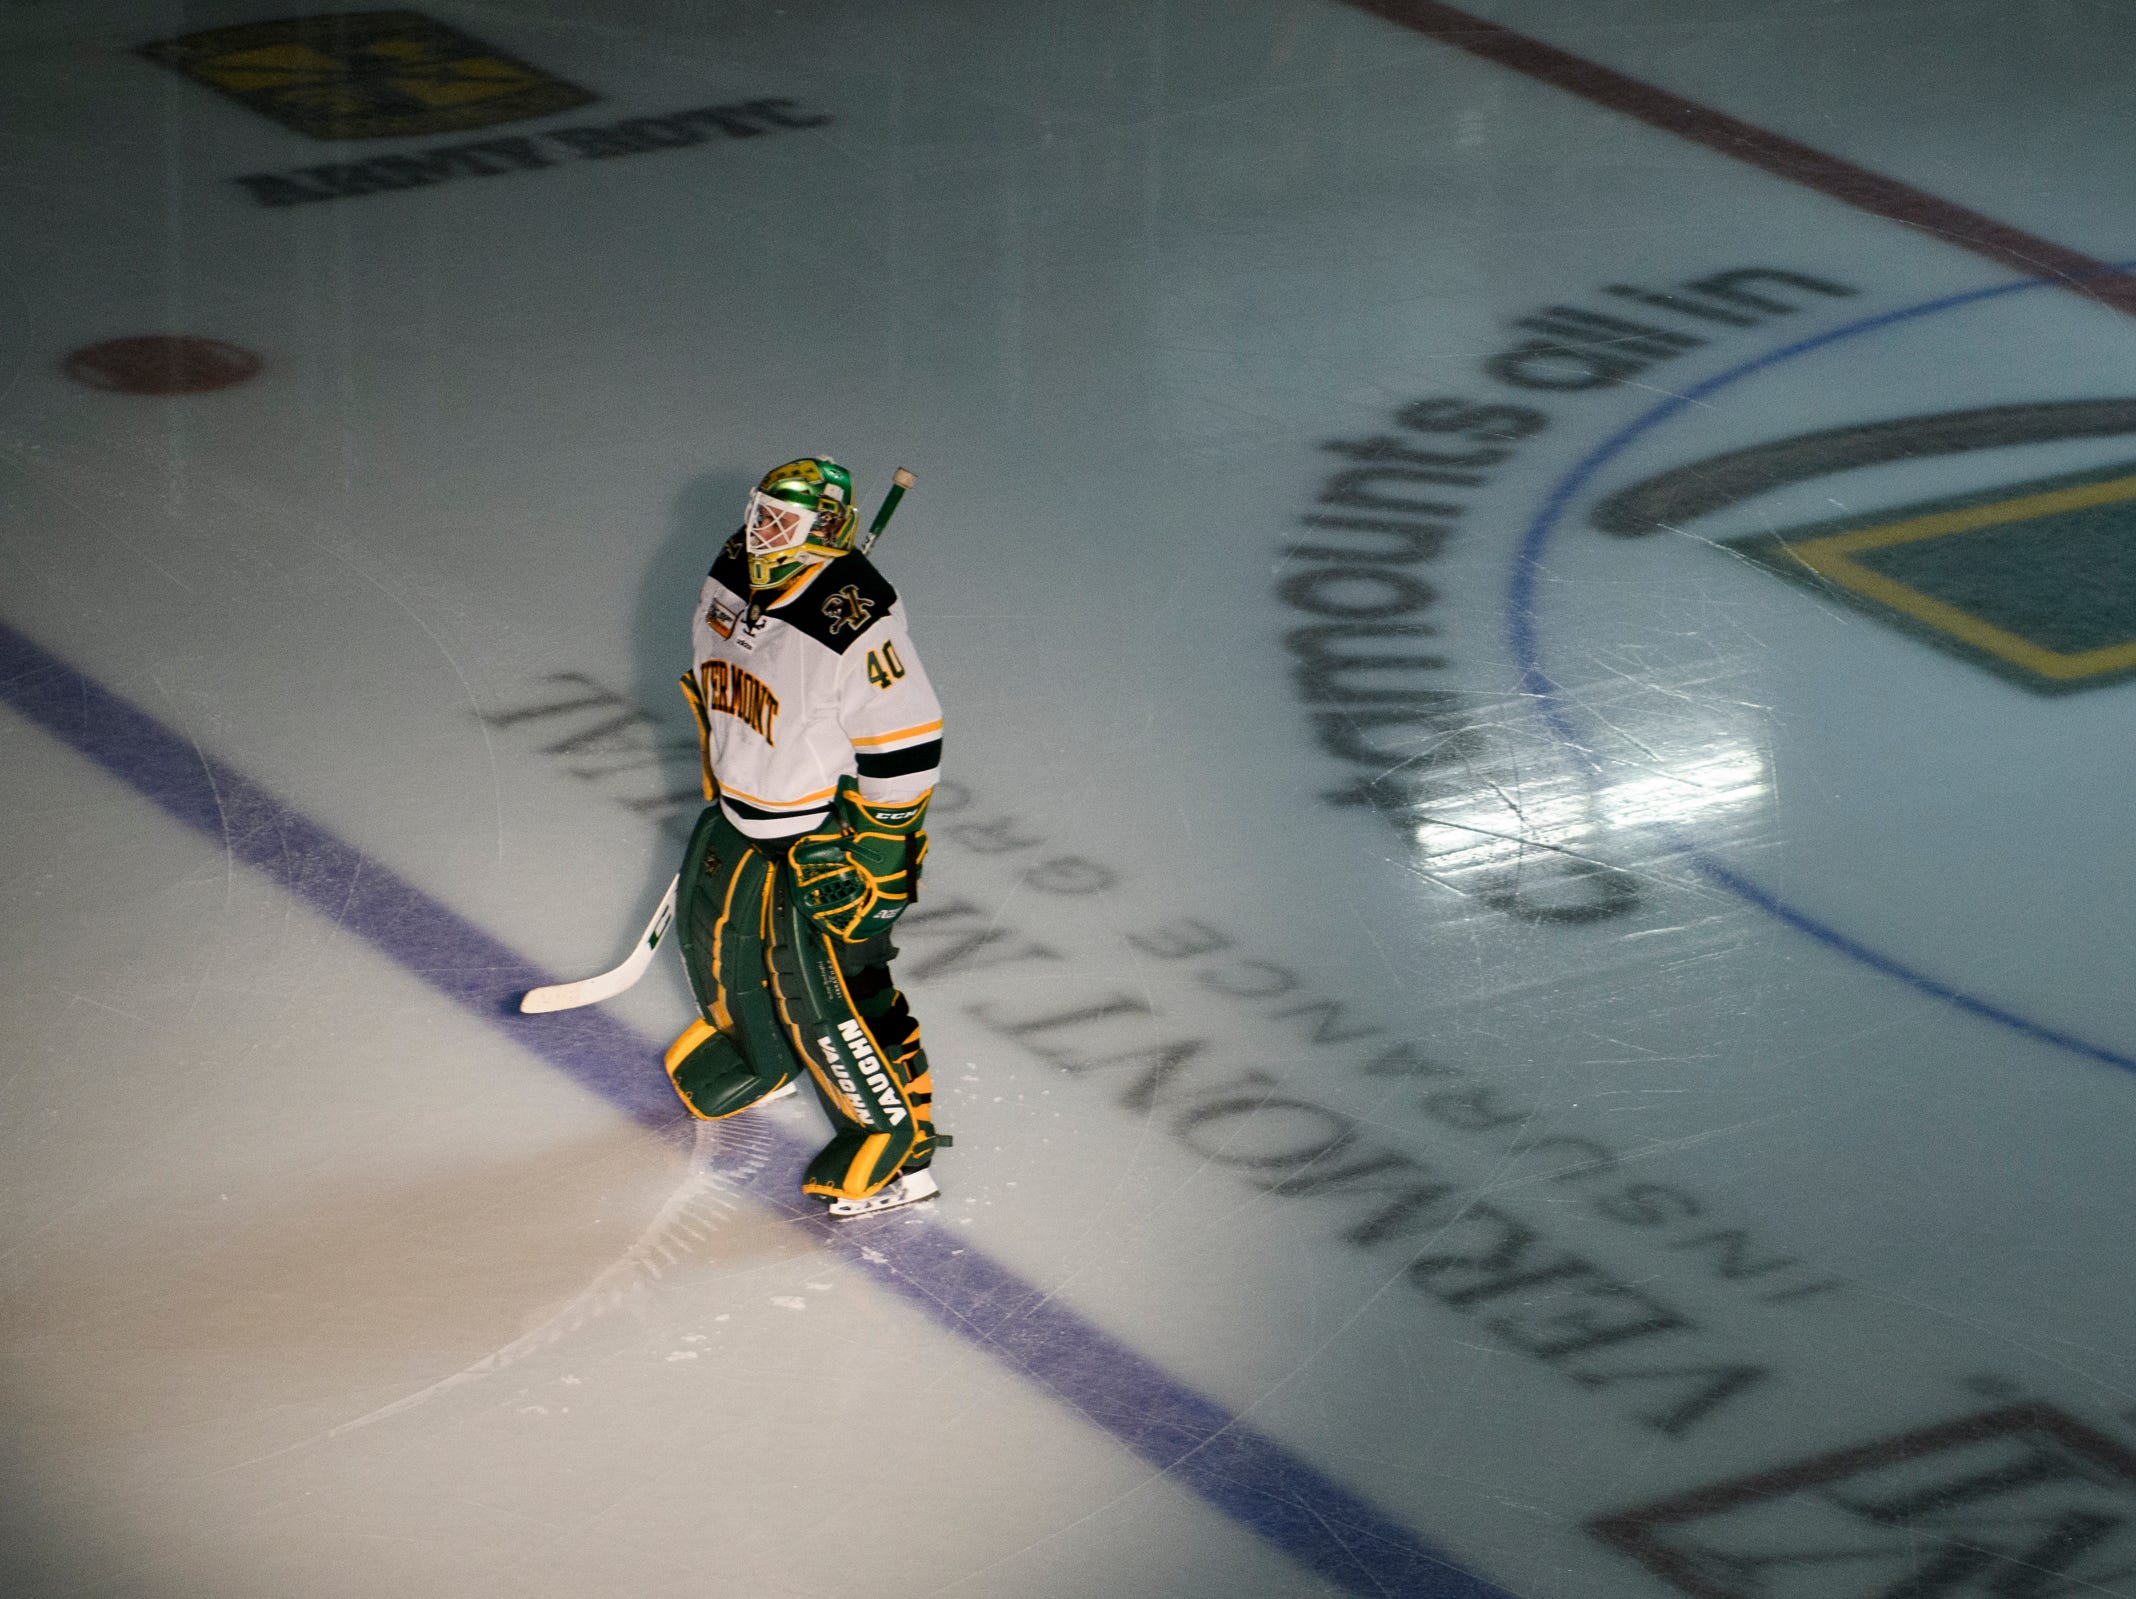 Vermont goalie Stefanos Lekkas (40) stands at the blue line during the player introductions before the start of the men's hockey game between the Sacred Heart Pioneers and the Vermont Catamounts at Gutterson Field House on Friday night January 4, 2019 in Burlington.